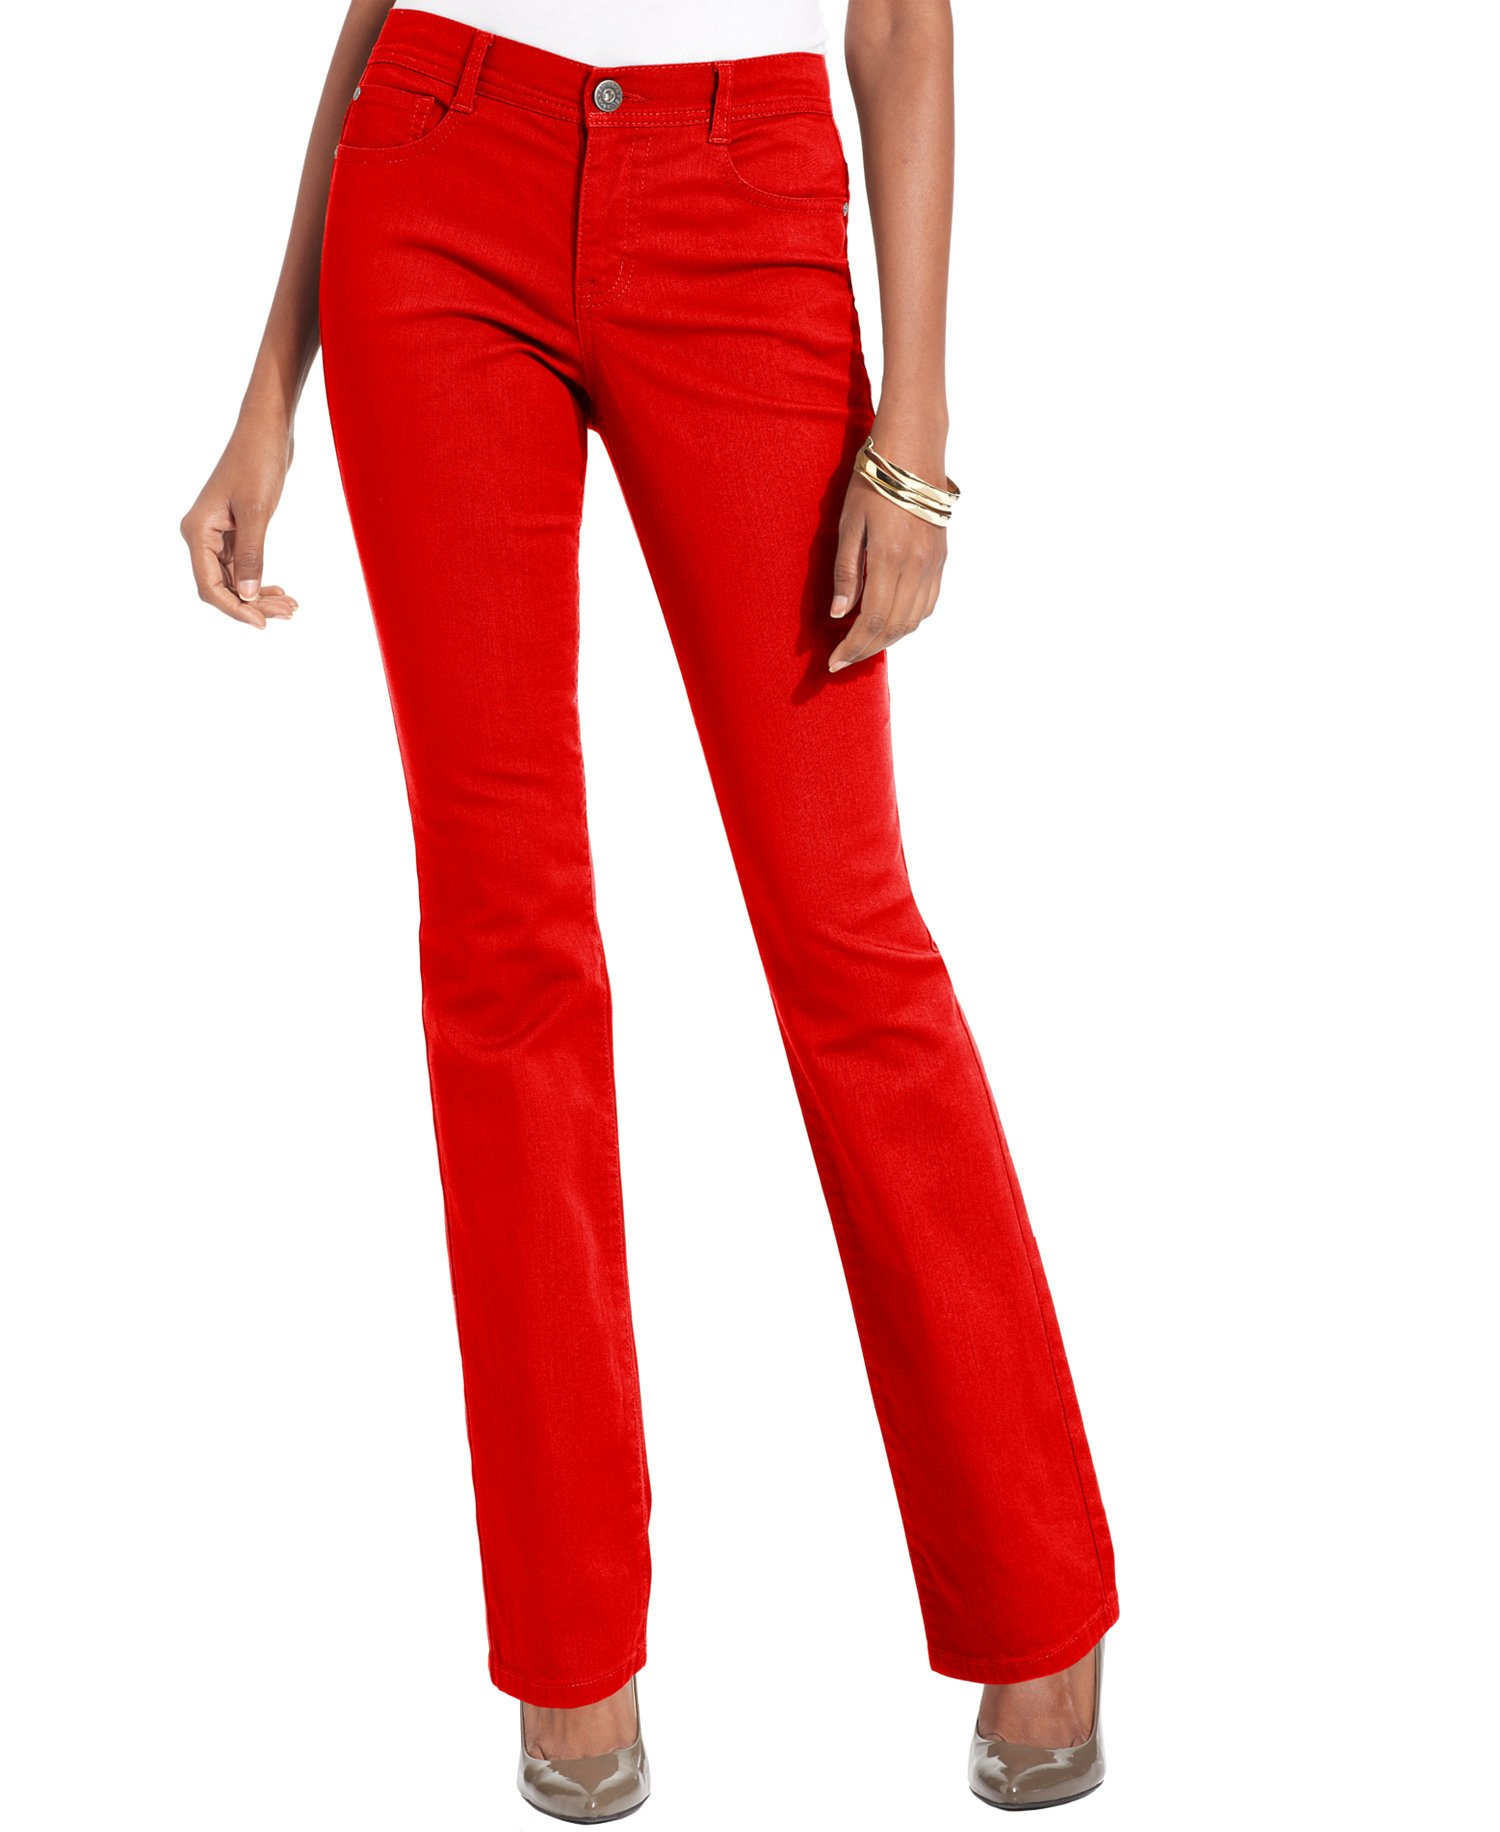 Style & Co. Womens Slim Fit Tummy-Control Slim Leg Jeans Red 16